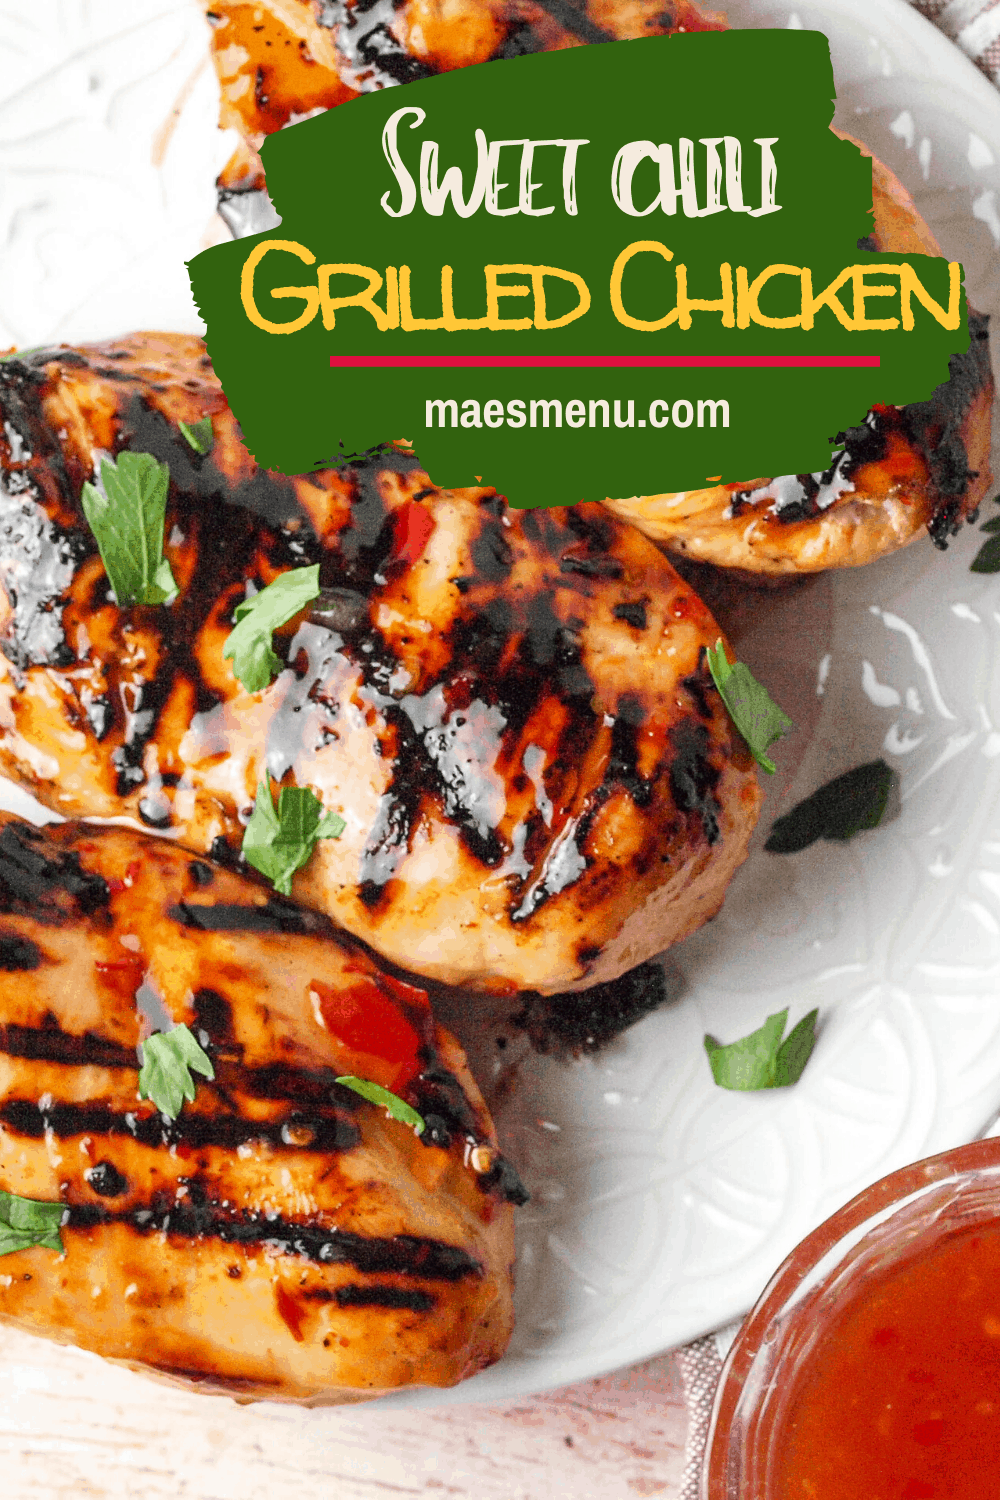 A pinterest pin for sweet chili grilled chicken with an overhead shot of the chicken on a white platter sitting next to a towel and cup of chili sauce.